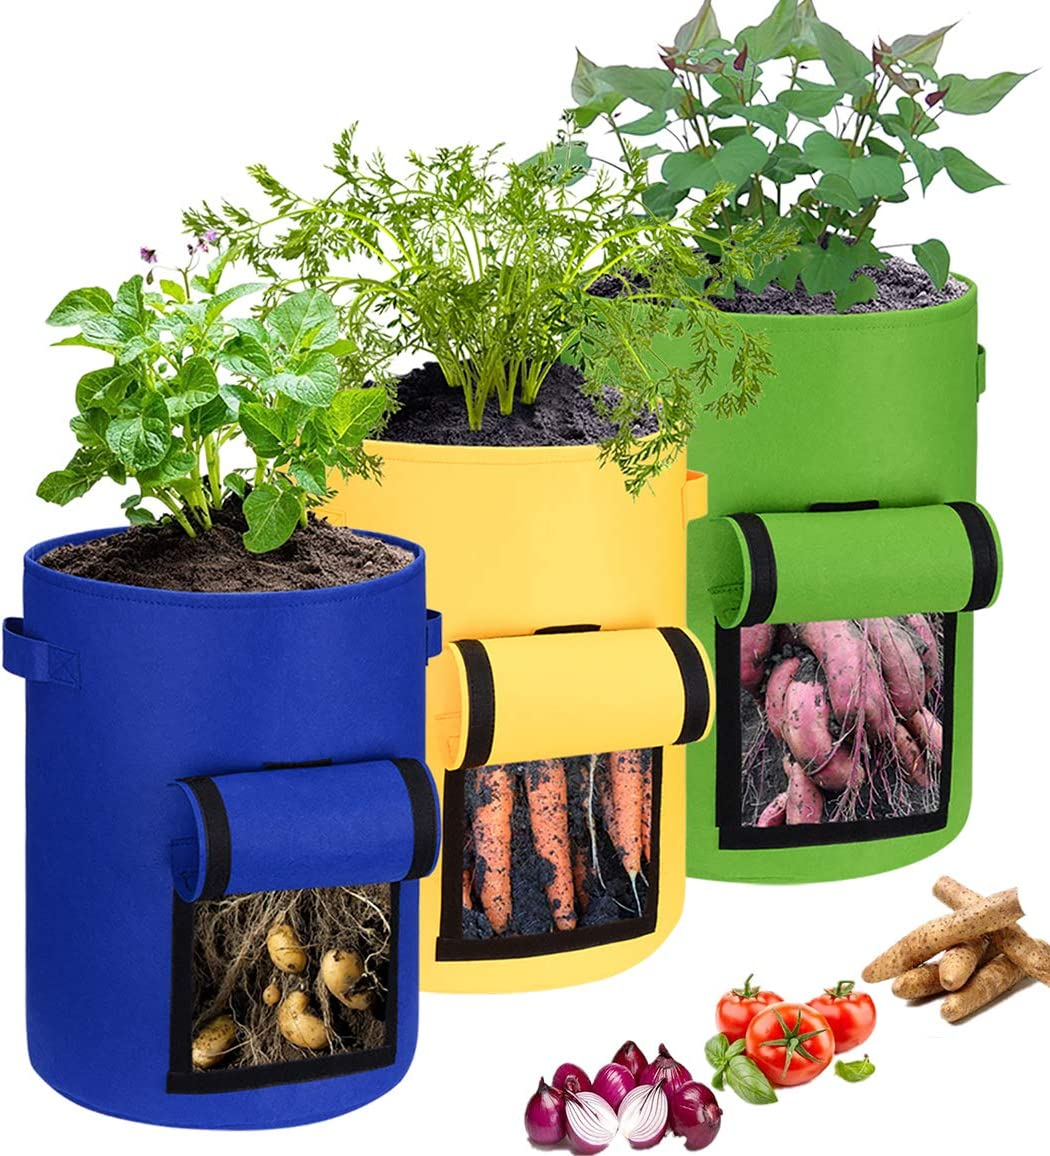 Soft Power 3 Pack 10 Gallon Garden Boxes:Heavy Duty Thickened Vegetable Grow Pots,Garden Planting Grow Bags for Potato Tomato and Other Vegetables,Heavy Duty Thickened Vegetable Grow Pots